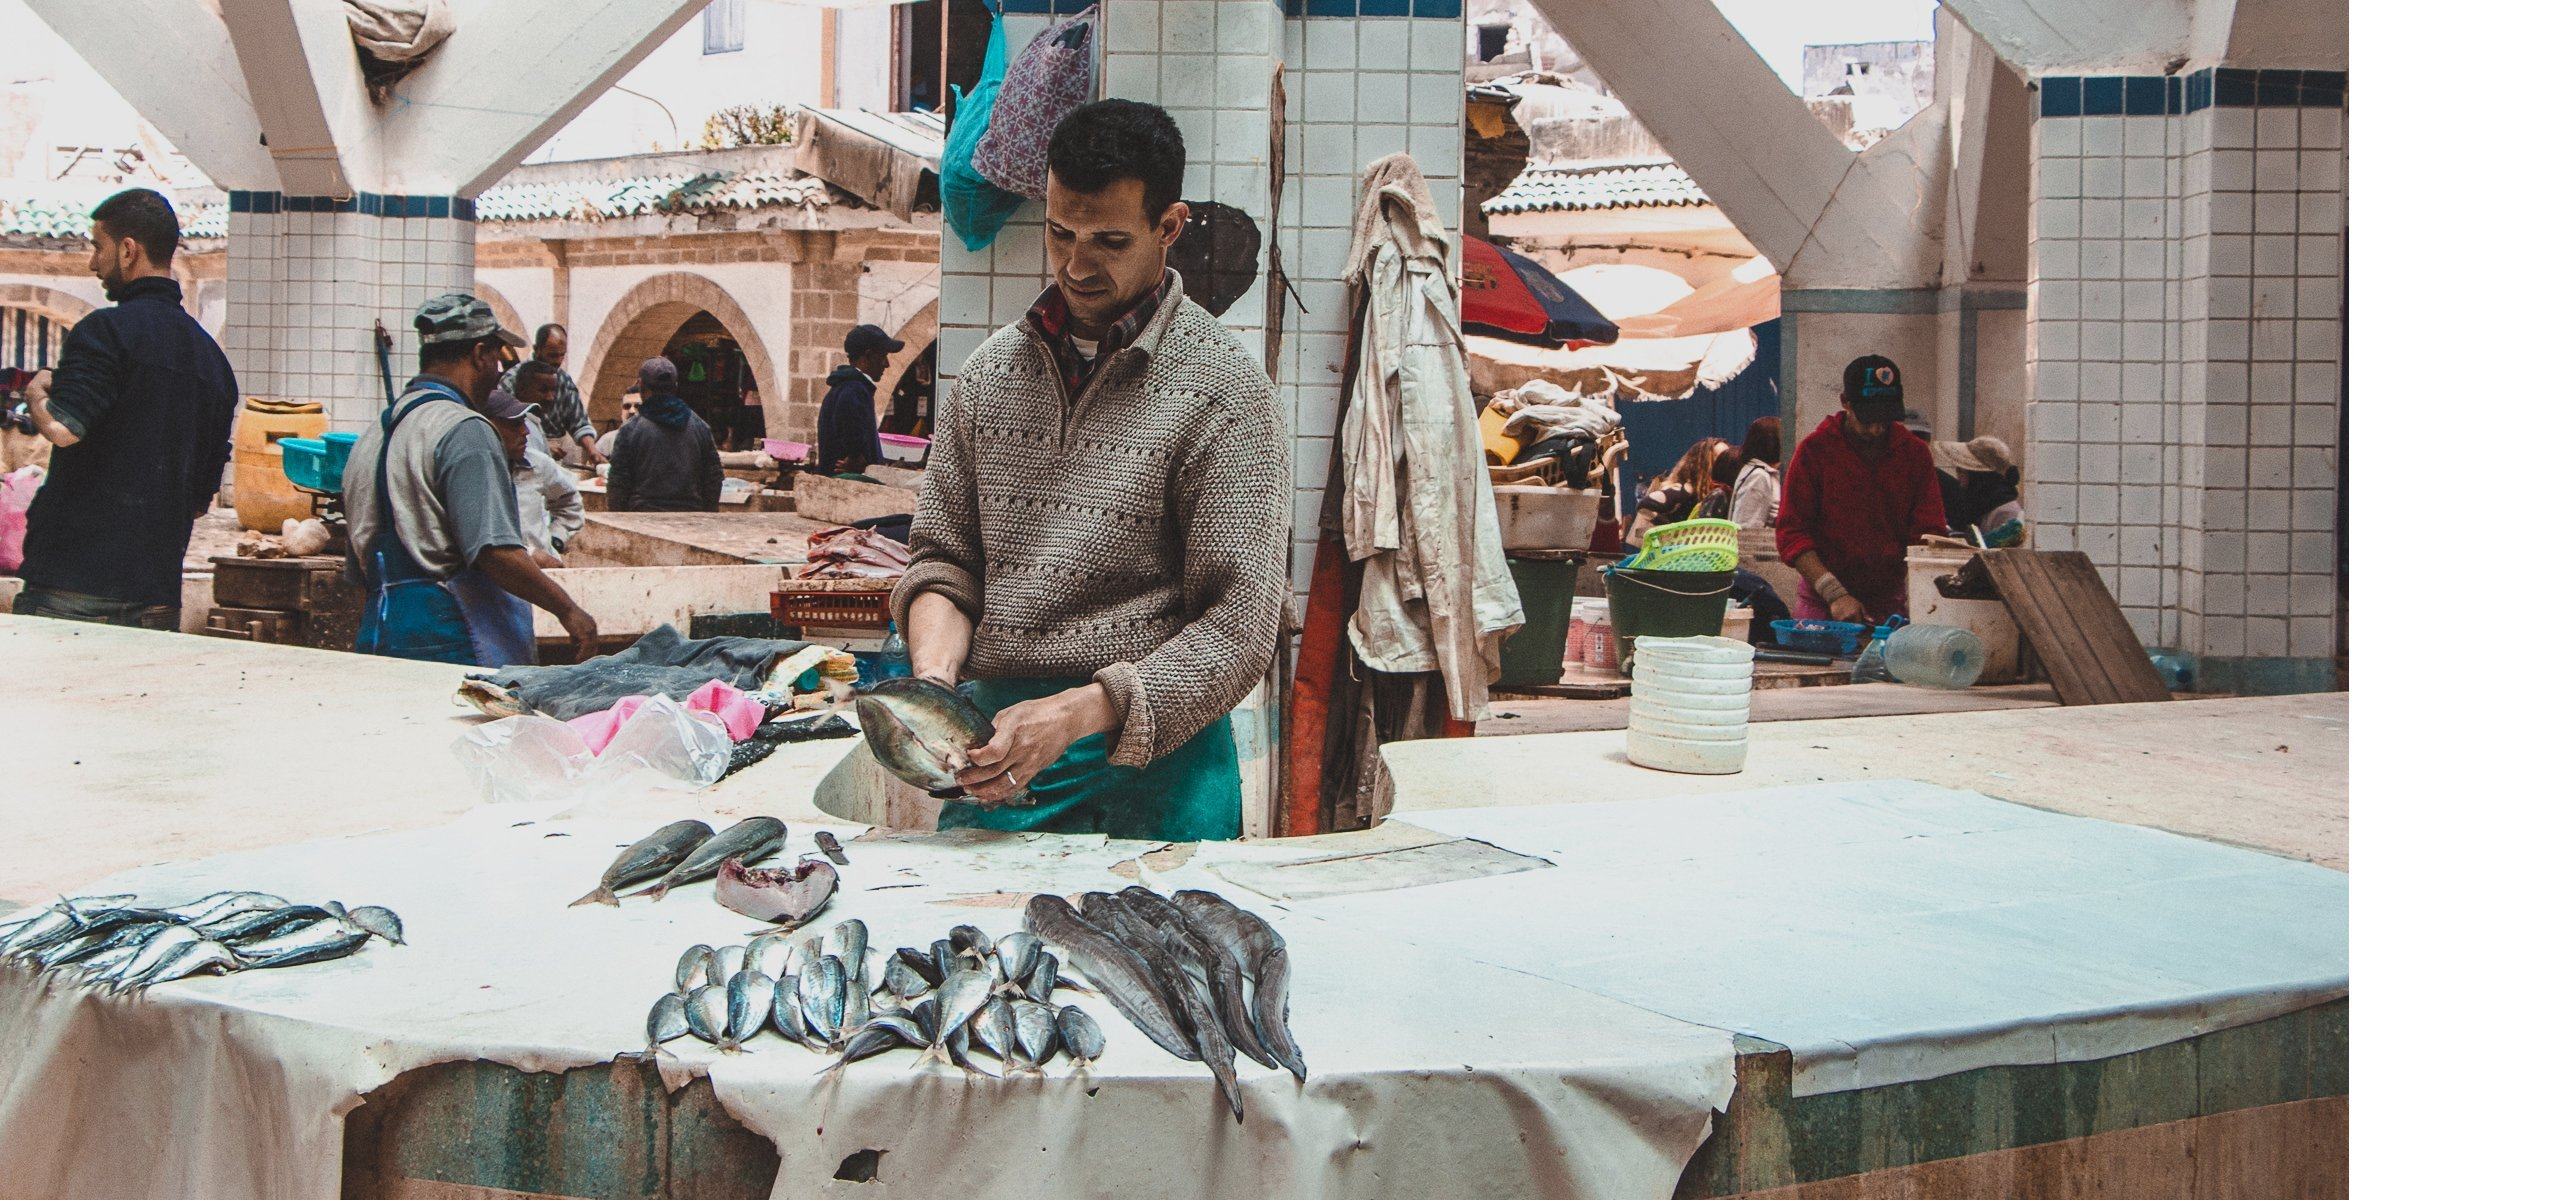 A man cleans fish at the Marche aux Poissons in Essaouira, Morocco |Beyond the Tagine: 11 Foods and Drinks of Morocco